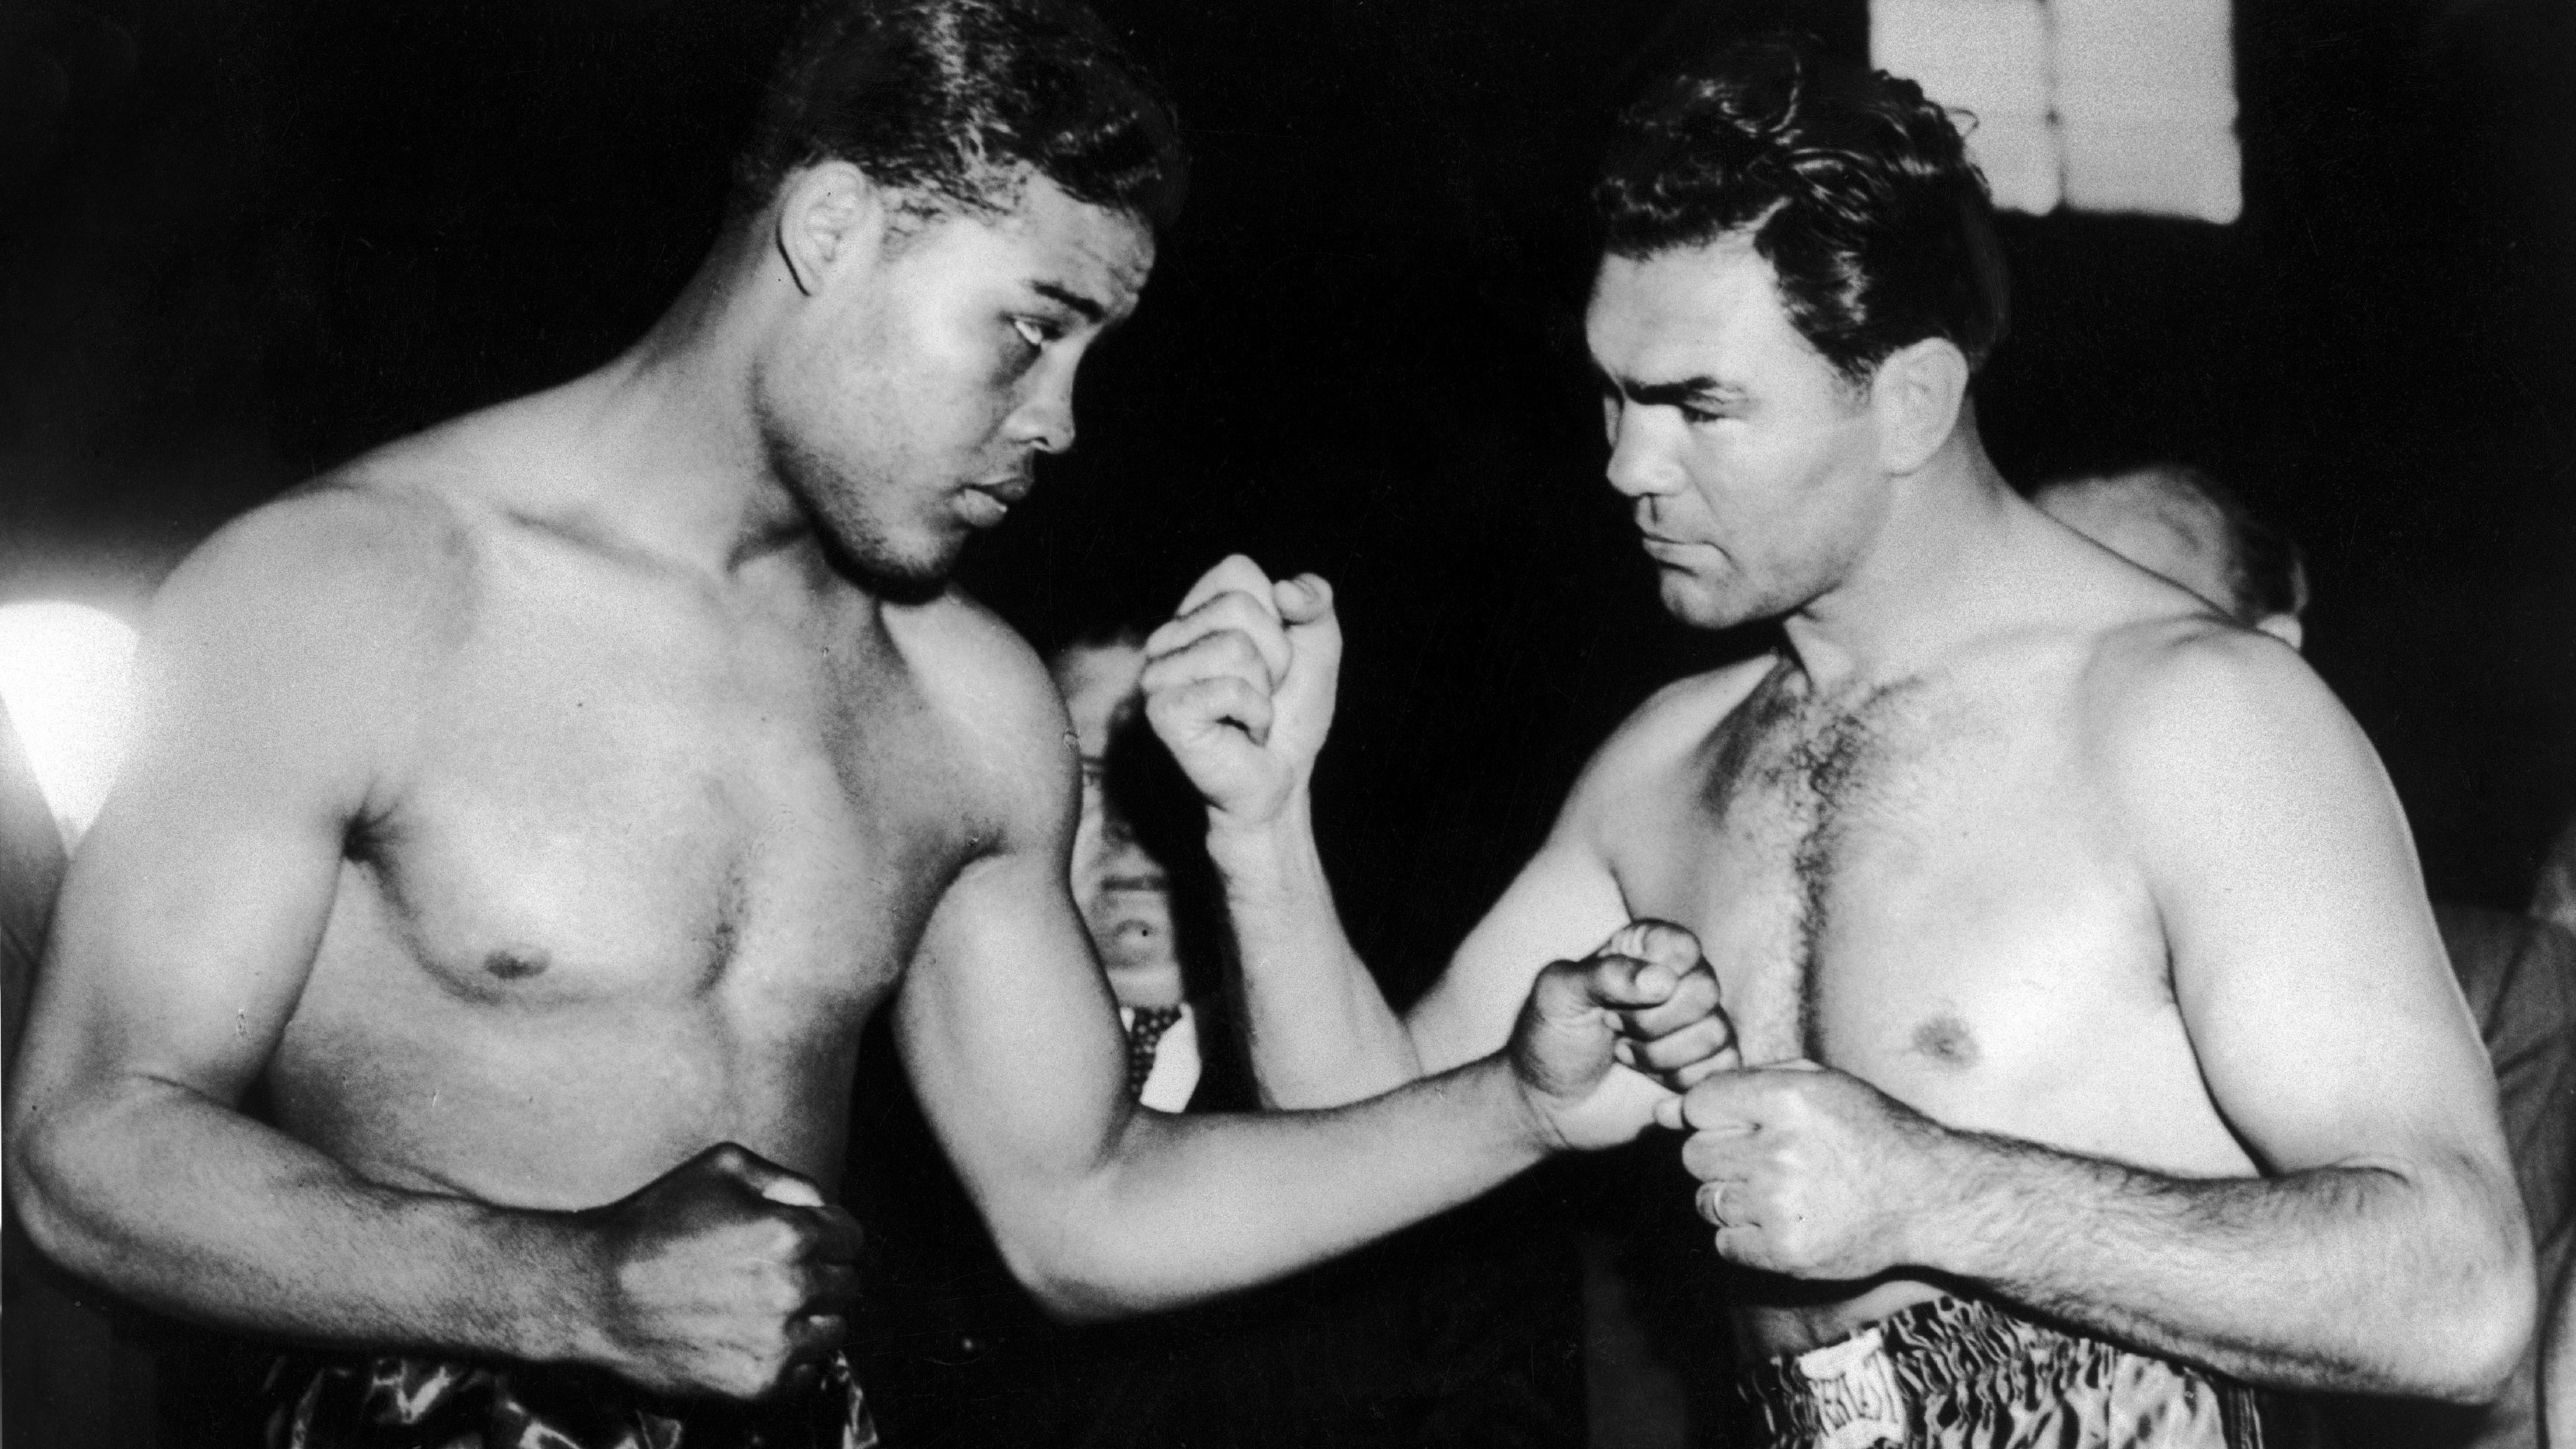 Joe Louis And Max Schmeling In The Ring, New York 1938